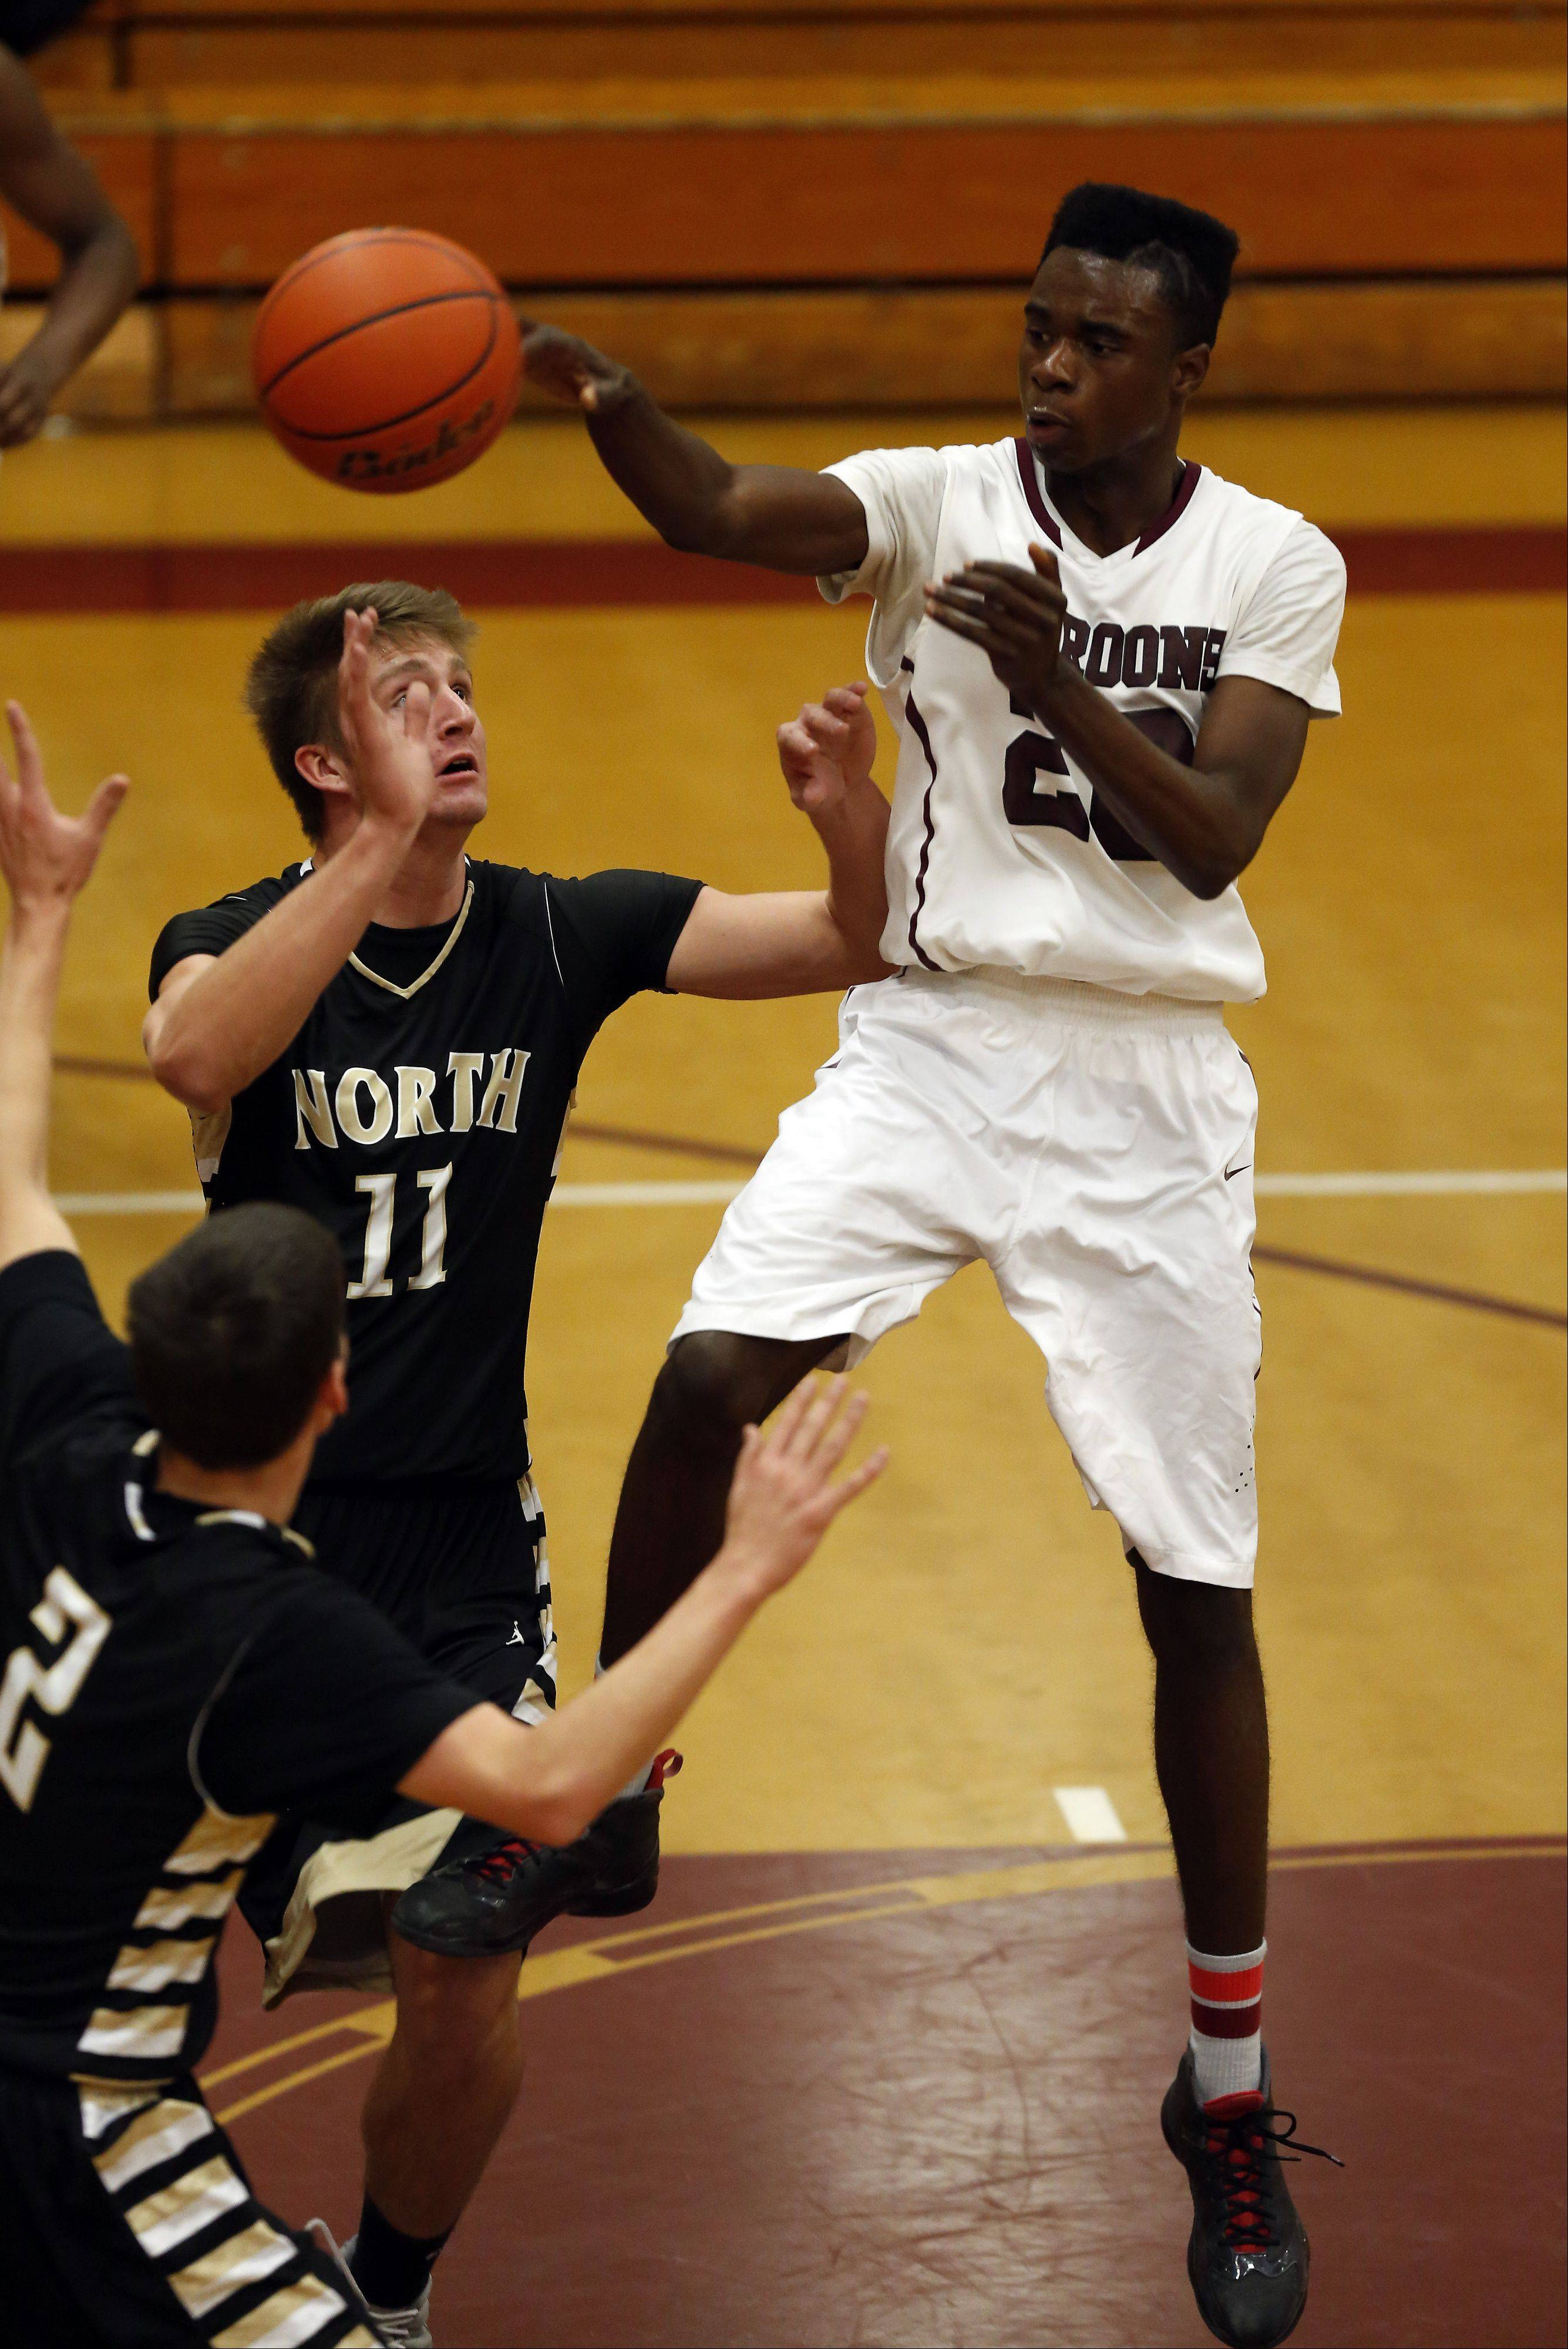 Elgin's Desmond Sanders, looks over Glenbard North's Brett Gasiorowski at the 39th Annual Elgin Boys Holiday Basketball Tournament at Elgin High School Saturday December 28, 2013.